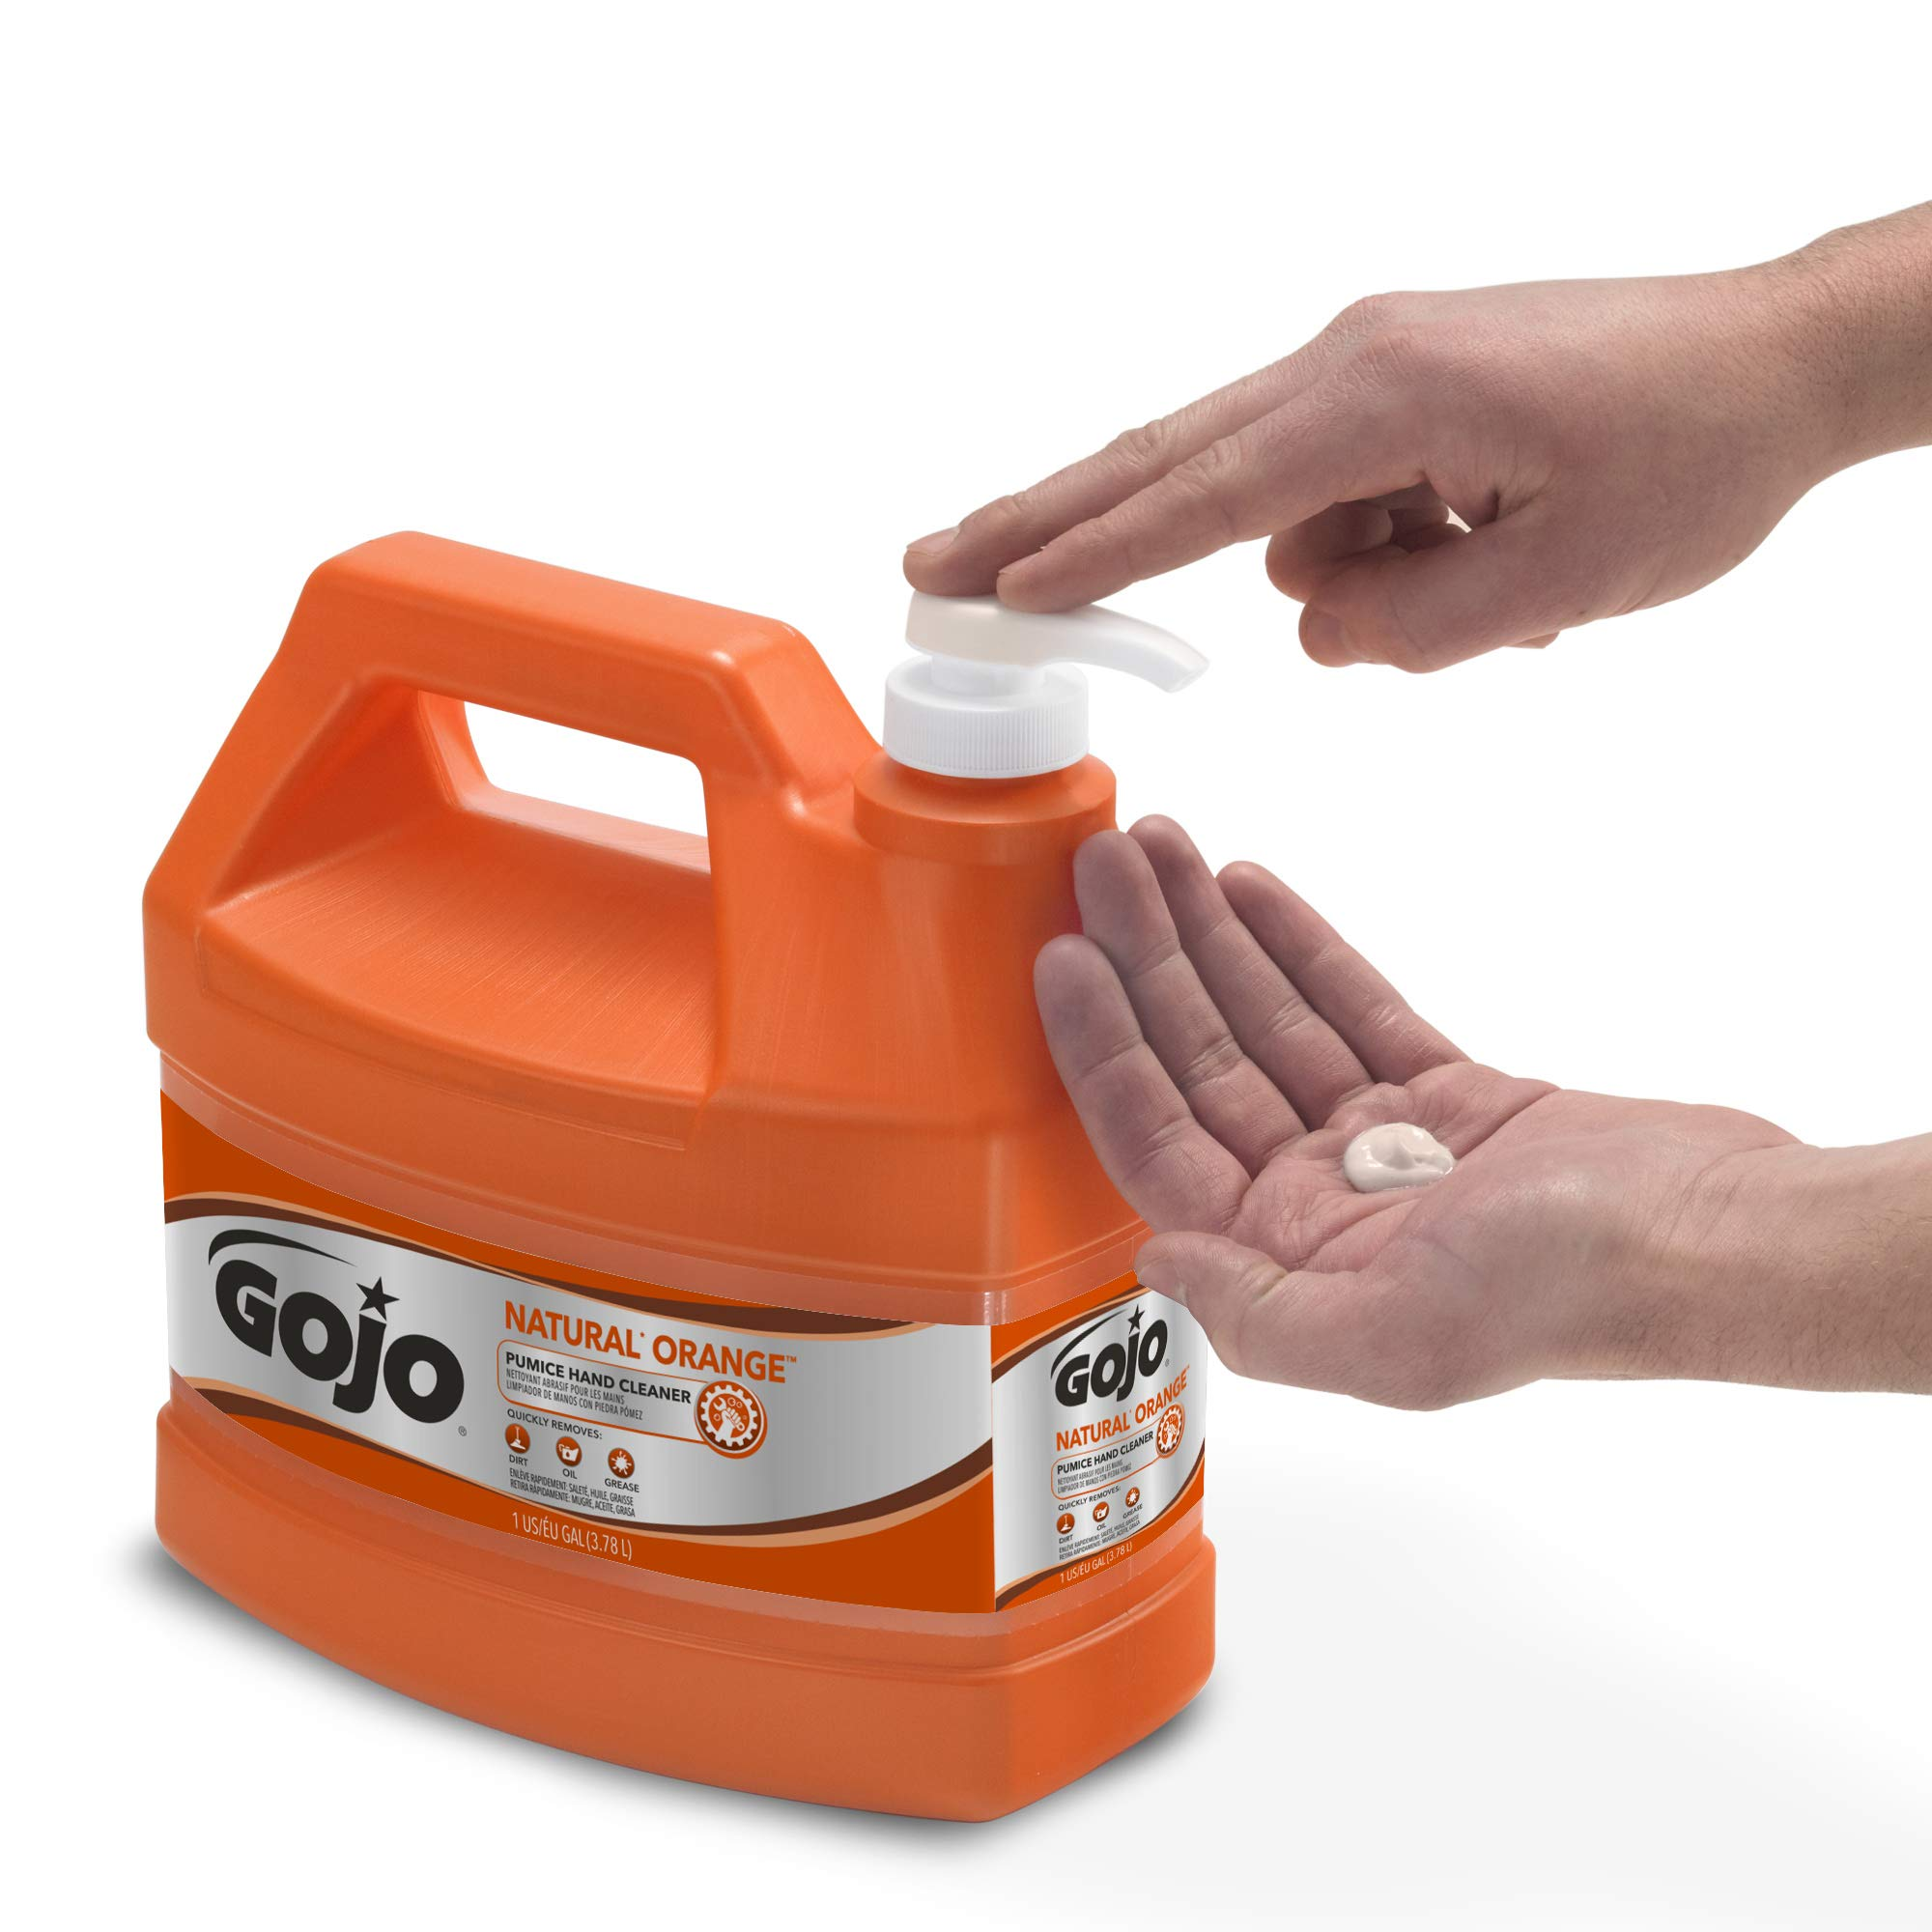 GOJO NATURAL ORANGE Pumice Industrial Hand Cleaner, 1 Gallon Quick Acting Lotion Hand Cleaner with Pumice Pump Bottle (Pack of 2) - 0955-02 by Gojo (Image #4)